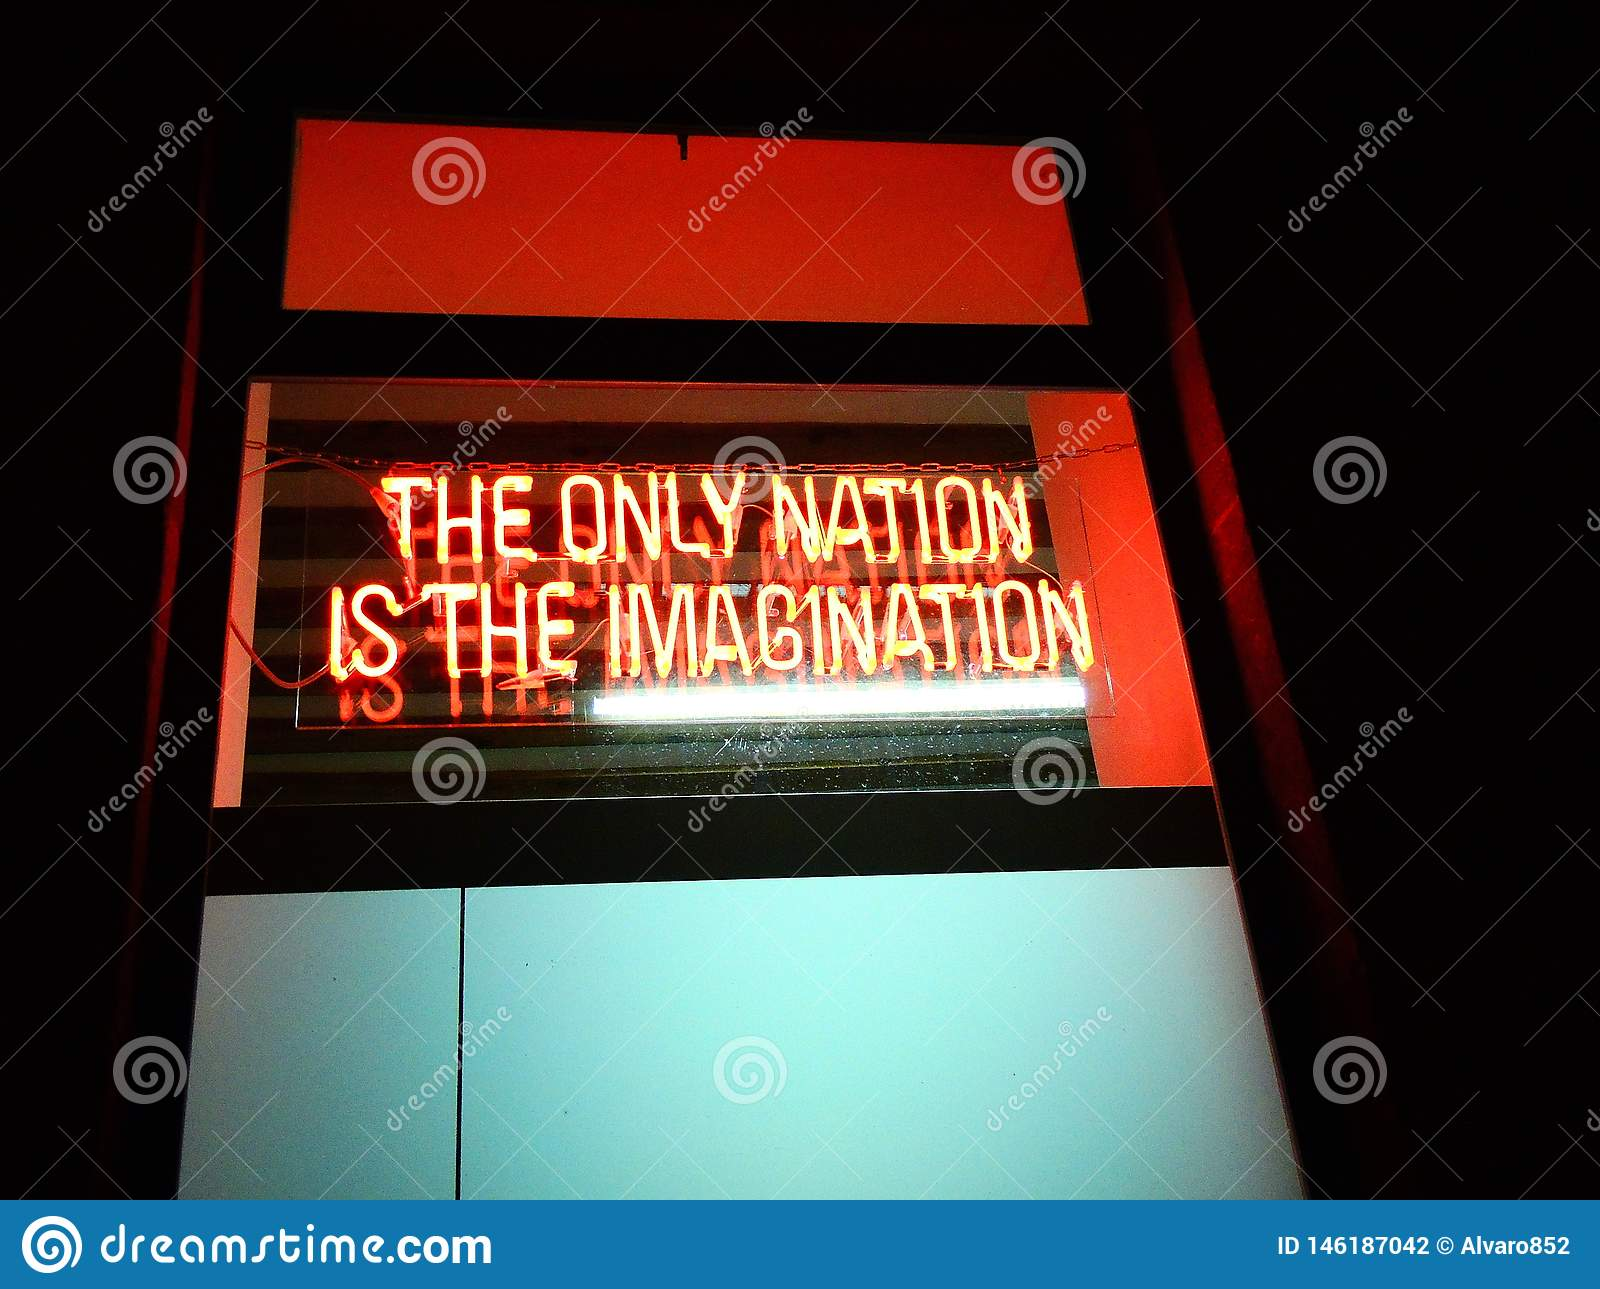 Logo: The only nation is the imagination